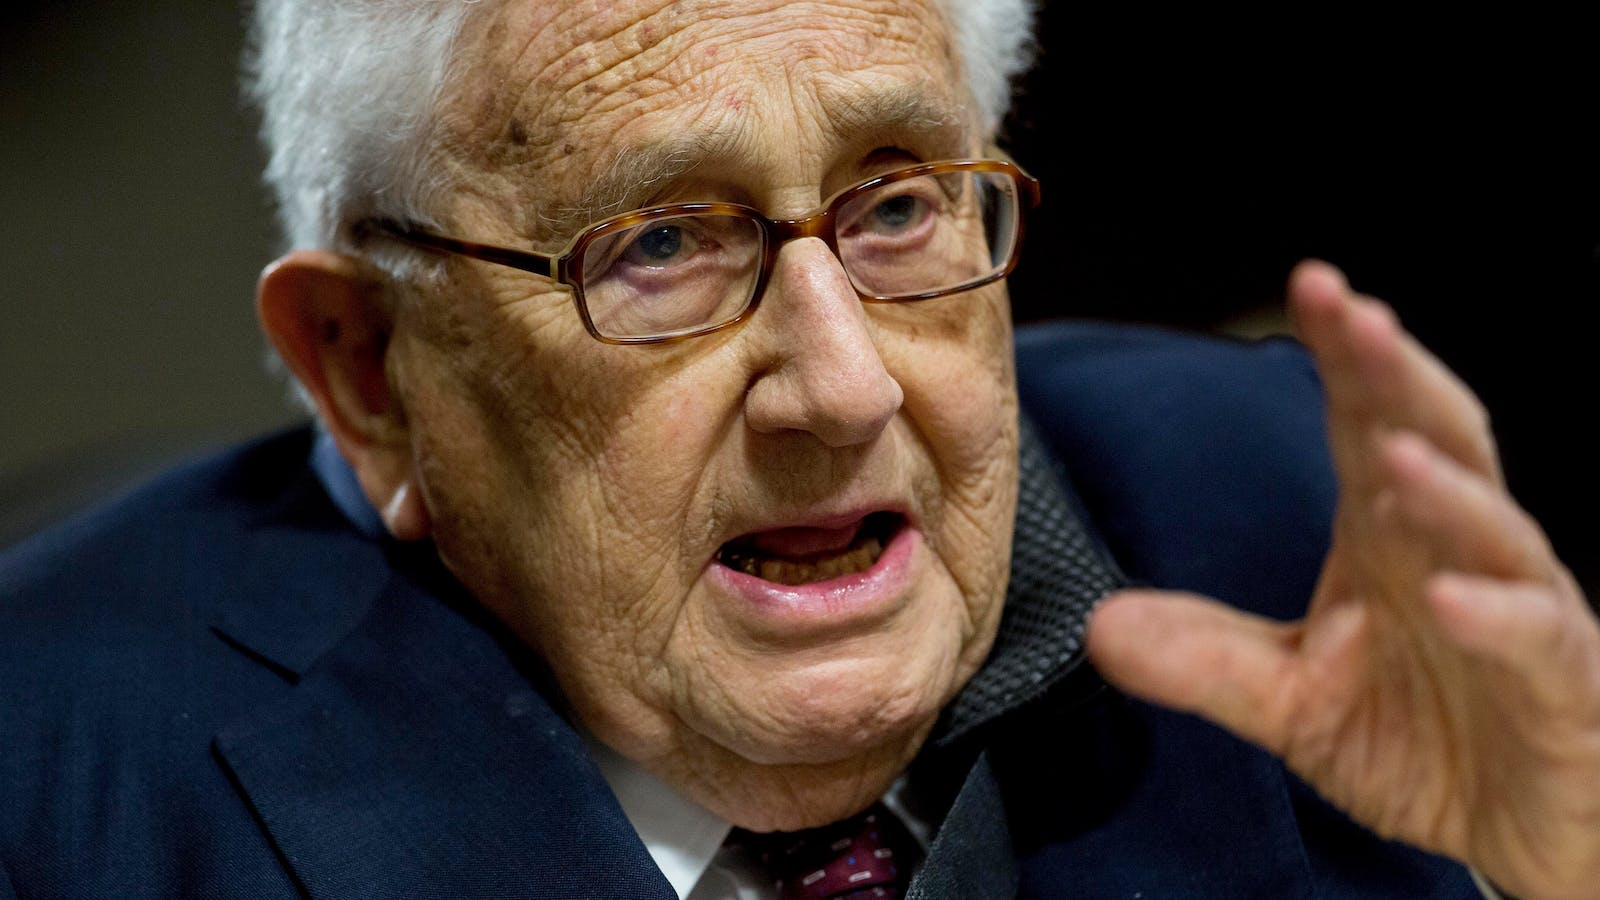 Henry Kissinger. Photo by Bloomberg.